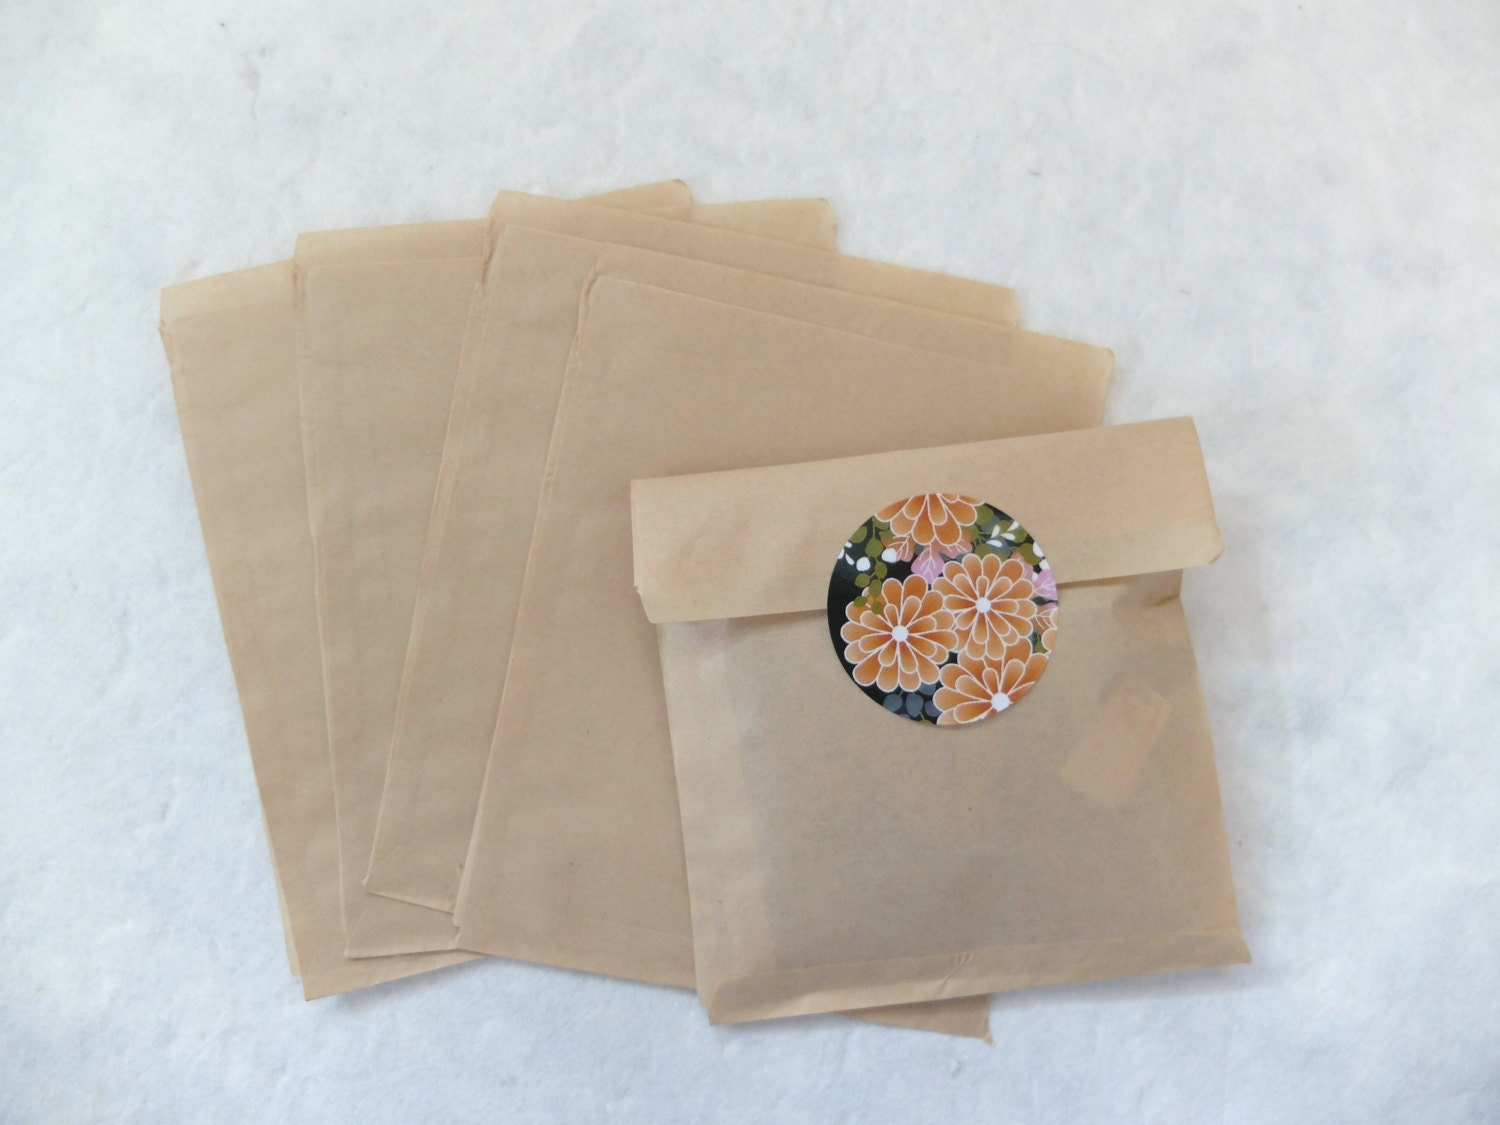 25 small craft brown flat paper bags by eastmeetswest on etsy for Brown paper craft bags